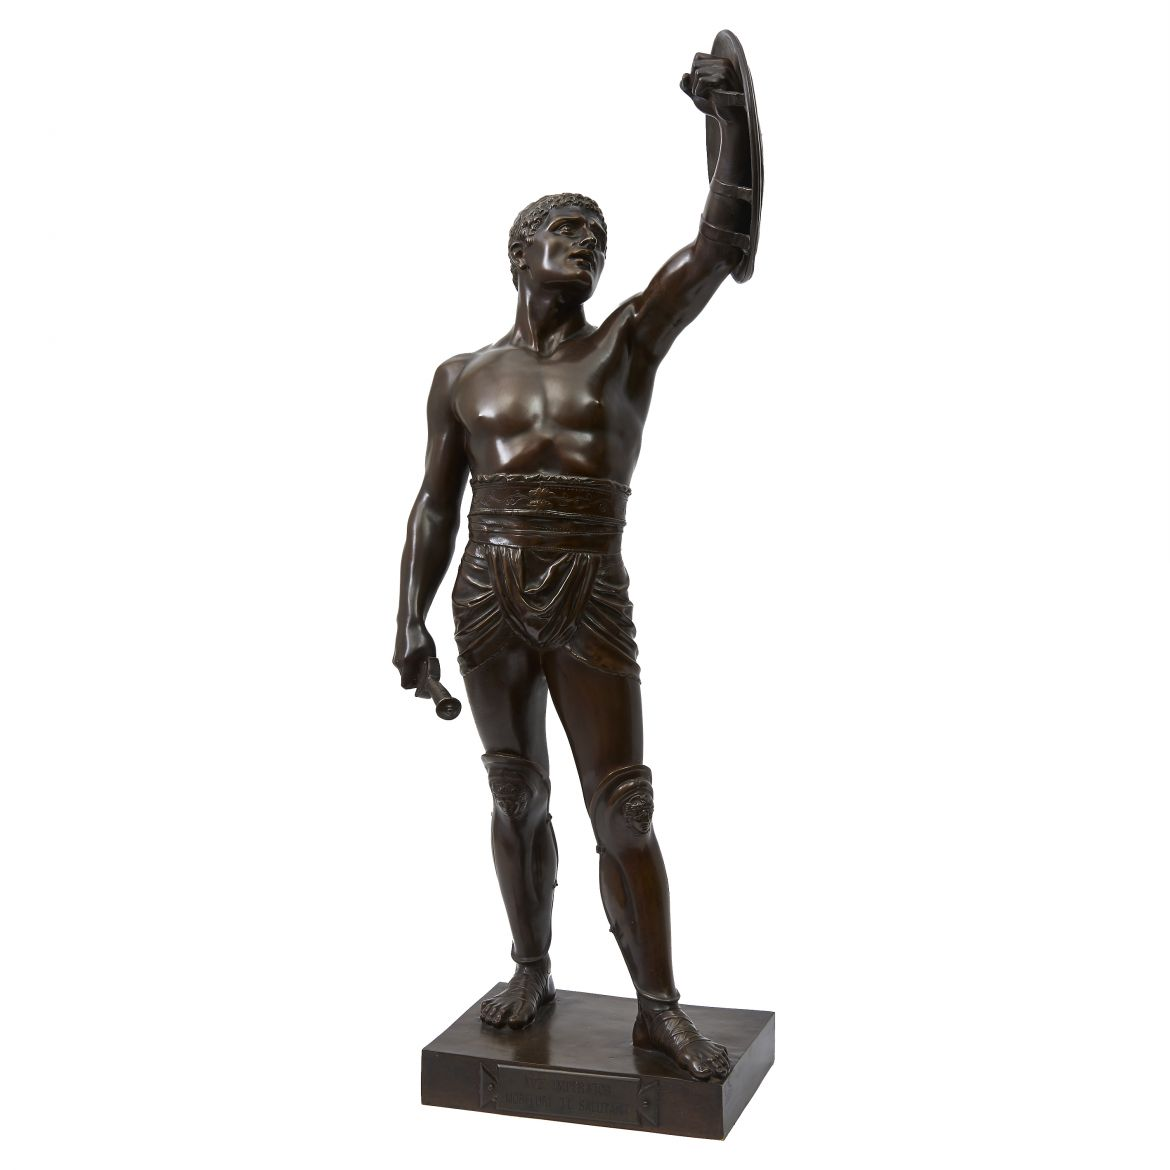 Emille Guillemin Signed Sculpture Of A Gladiator